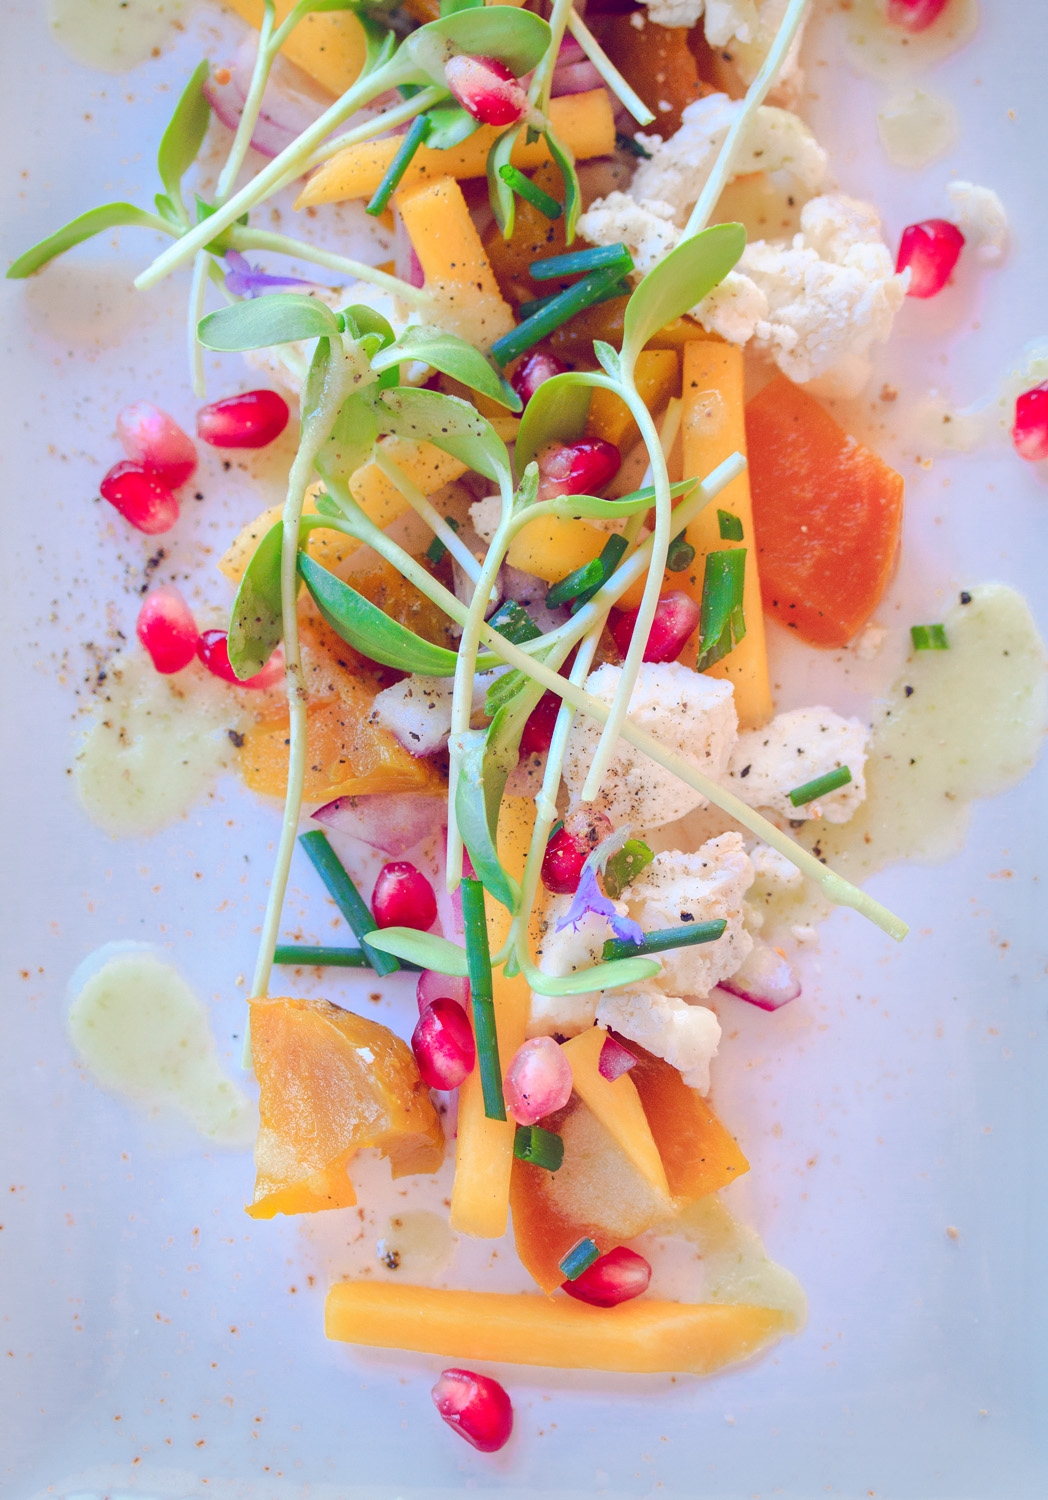 A fresh vibrant salad prepared at Cello Restaurant